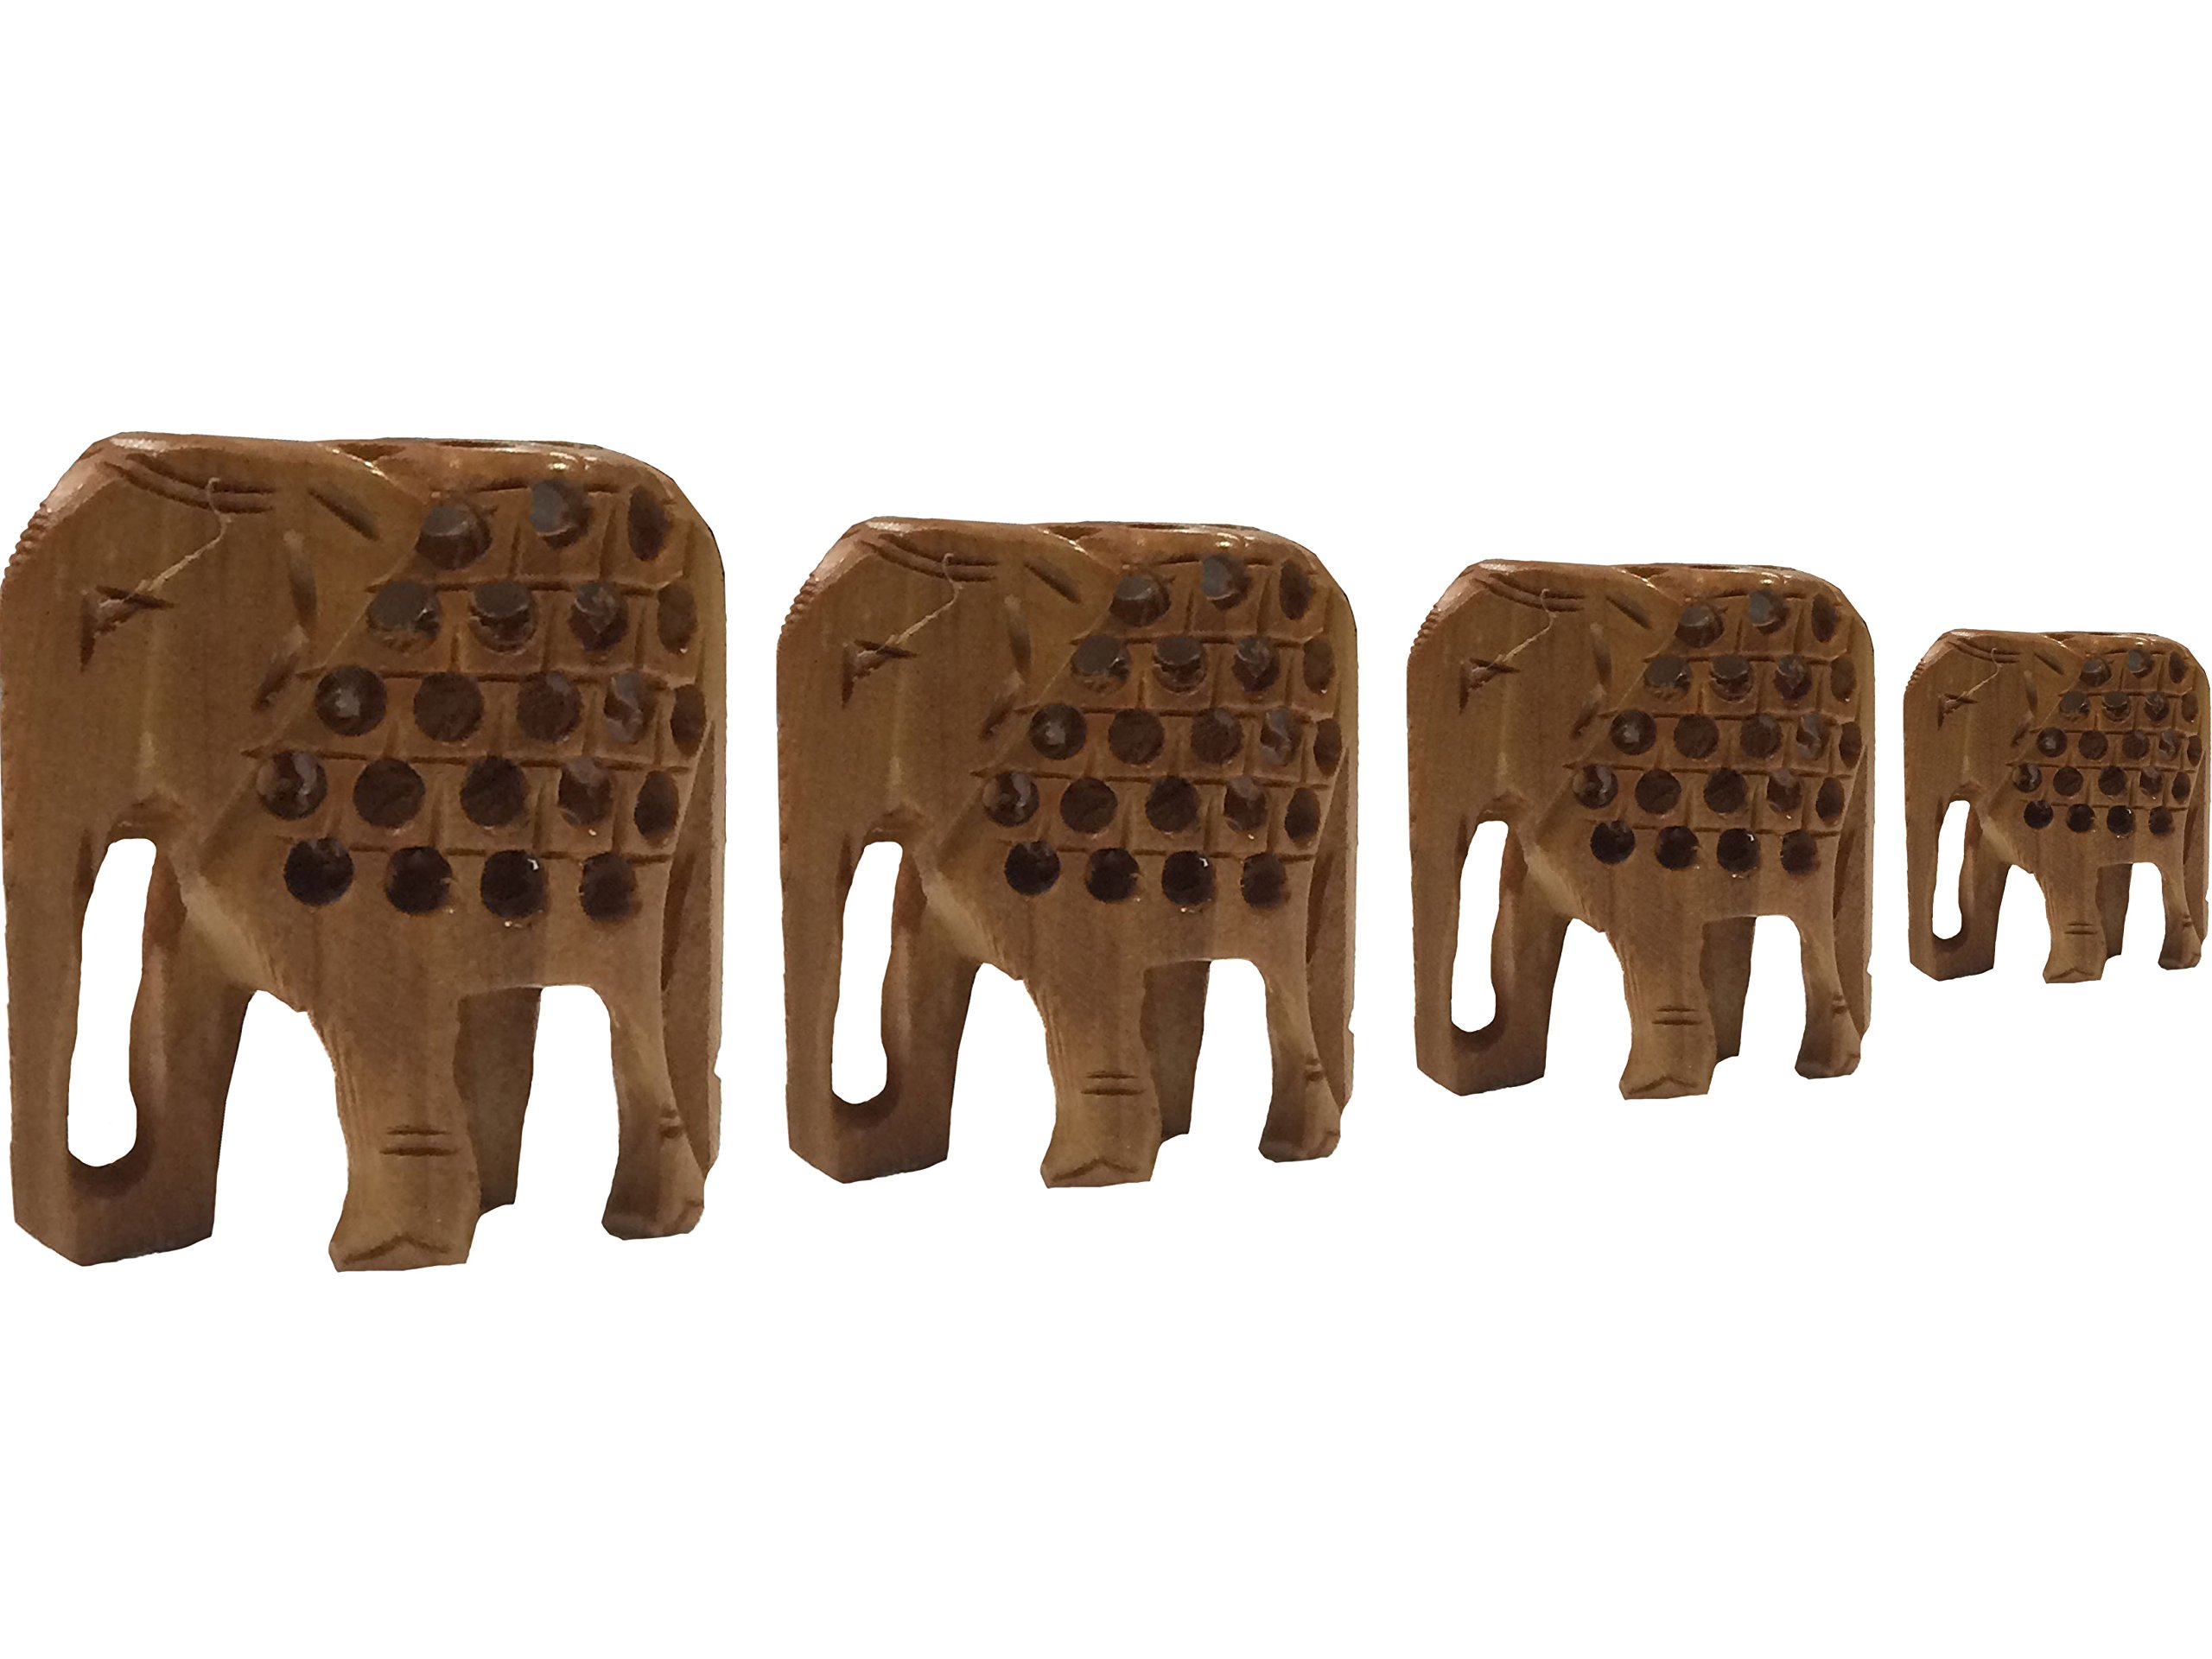 Valentine Day Special Gift, Wooden Elephants &Net Design - Set of 4. Ornament Heights 7 / 6 / 5 / 4 Wooden Carving Elephant, Handcrafted Wooden Elephant, Wood Sculpture Hand Work, Brown Color